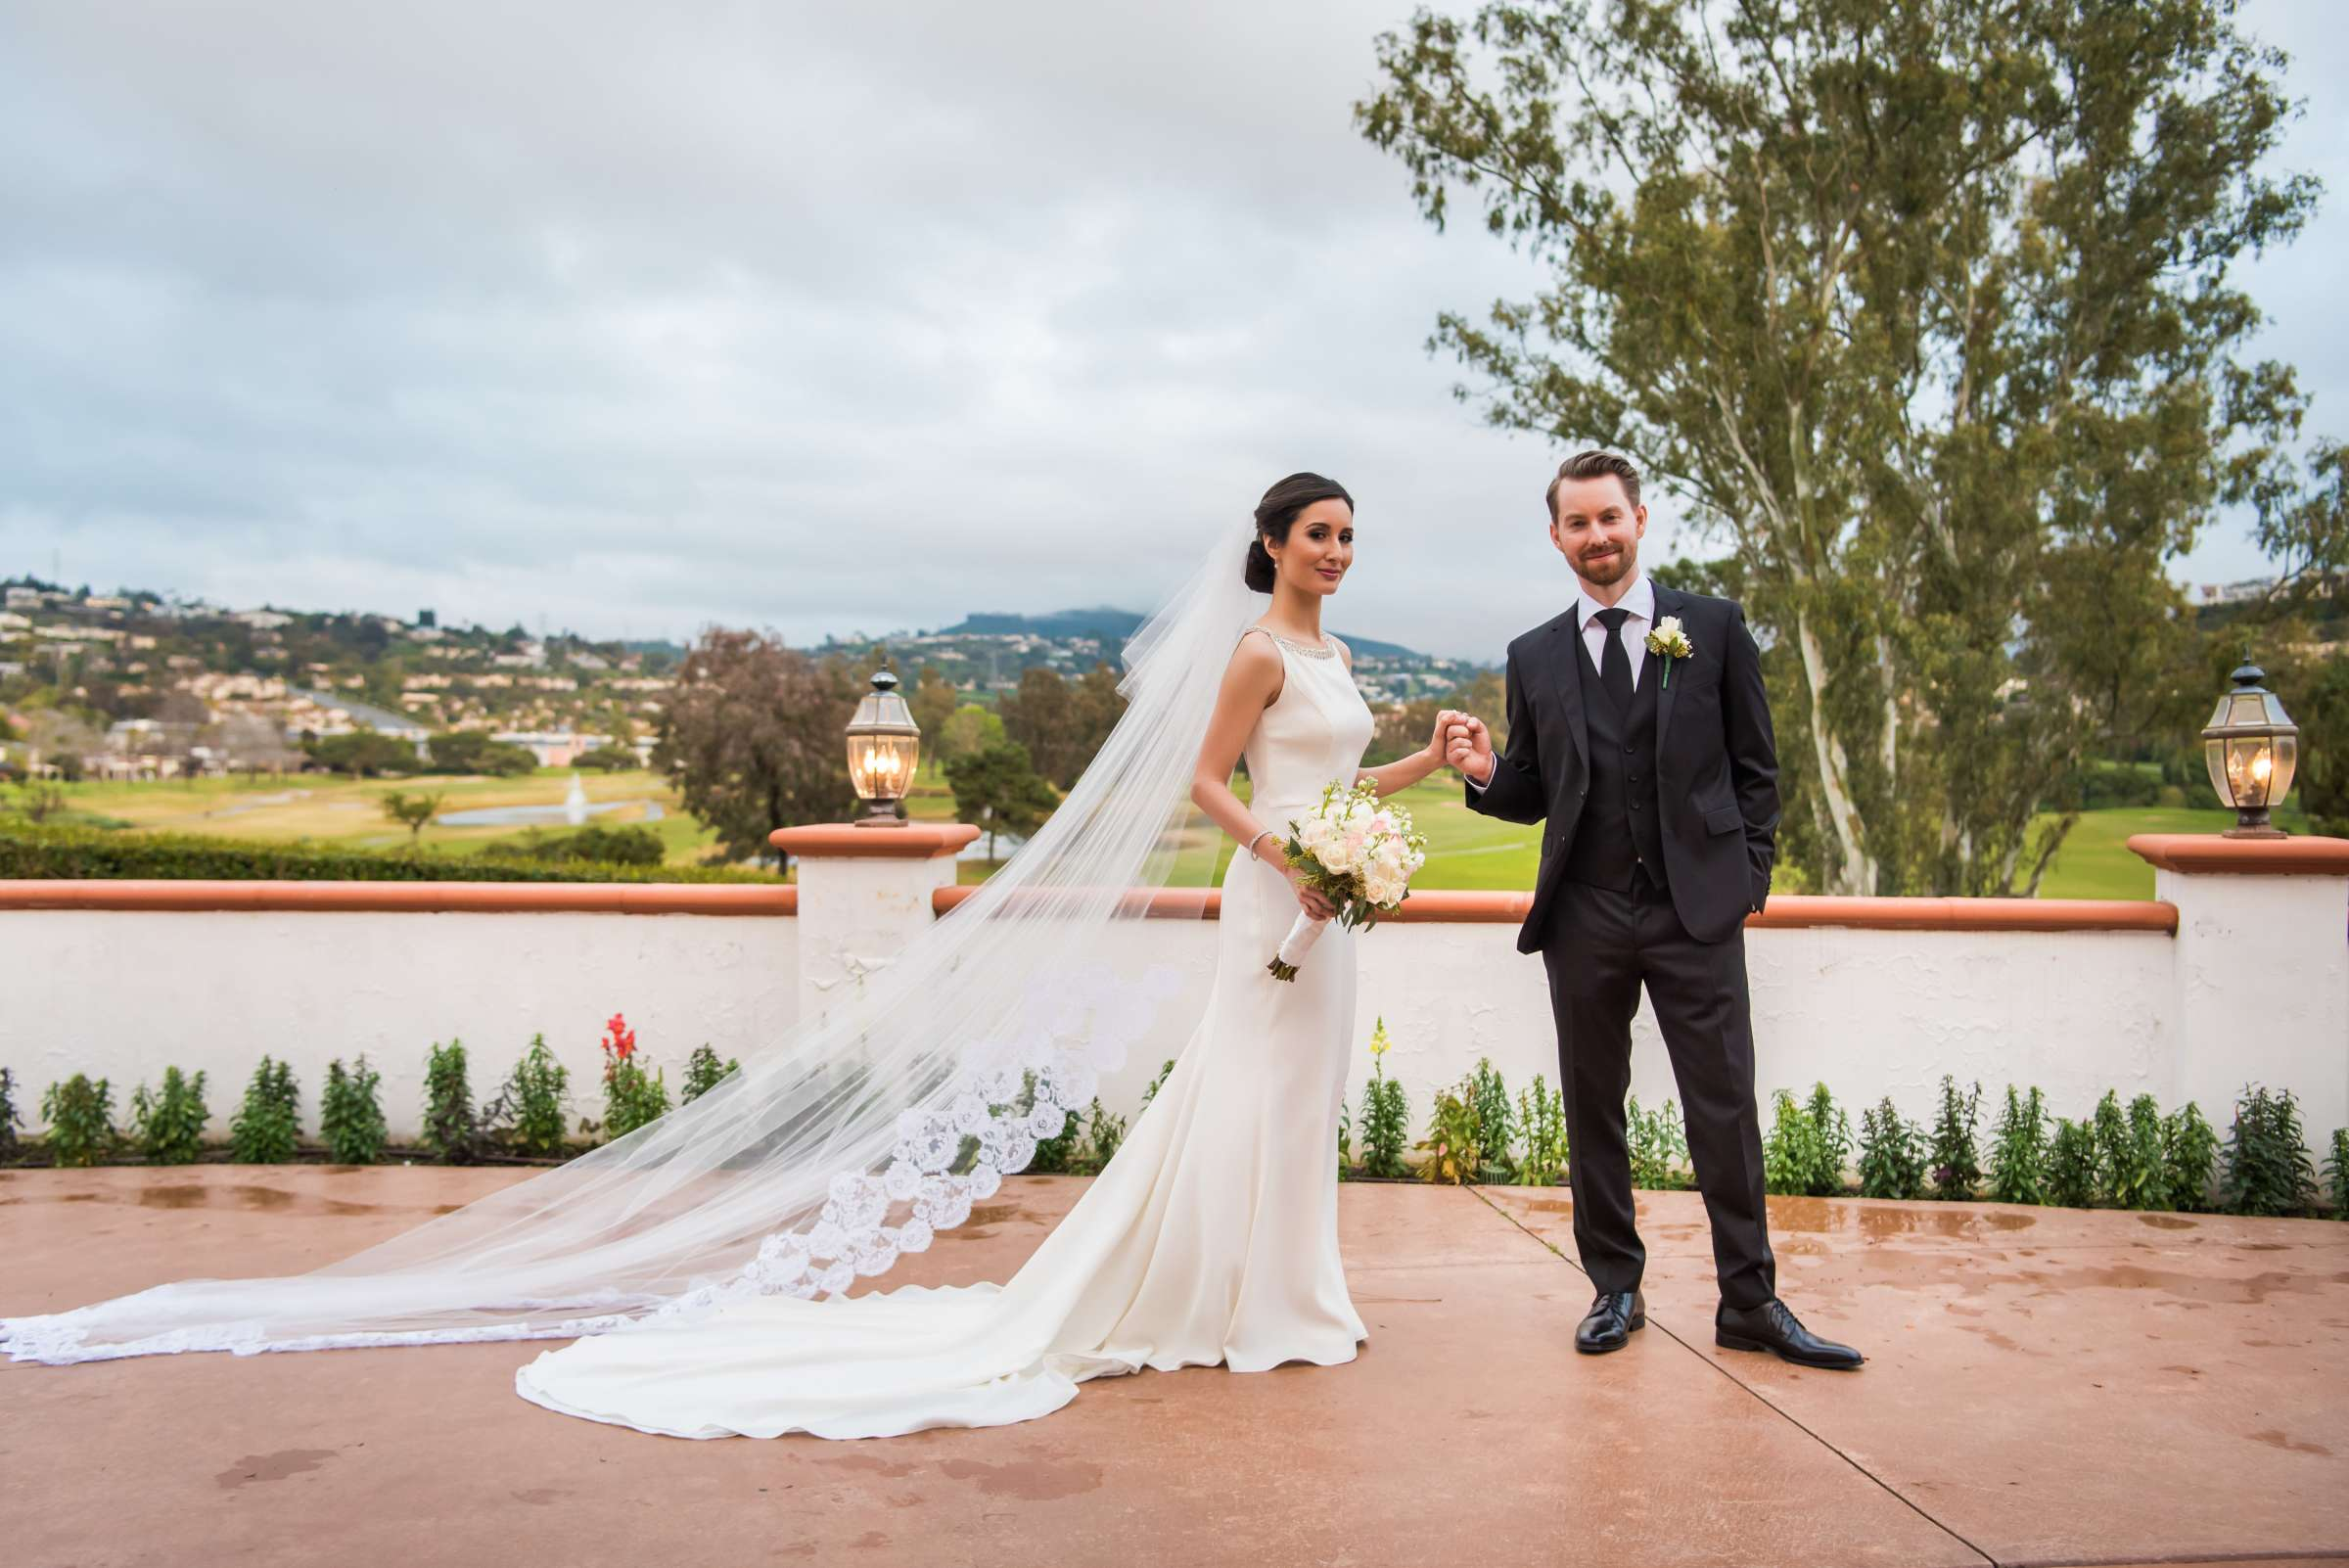 Omni La Costa Resort & Spa Wedding coordinated by Sweet Blossom Weddings, Sarah and Daniel Wedding Photo #18 by True Photography